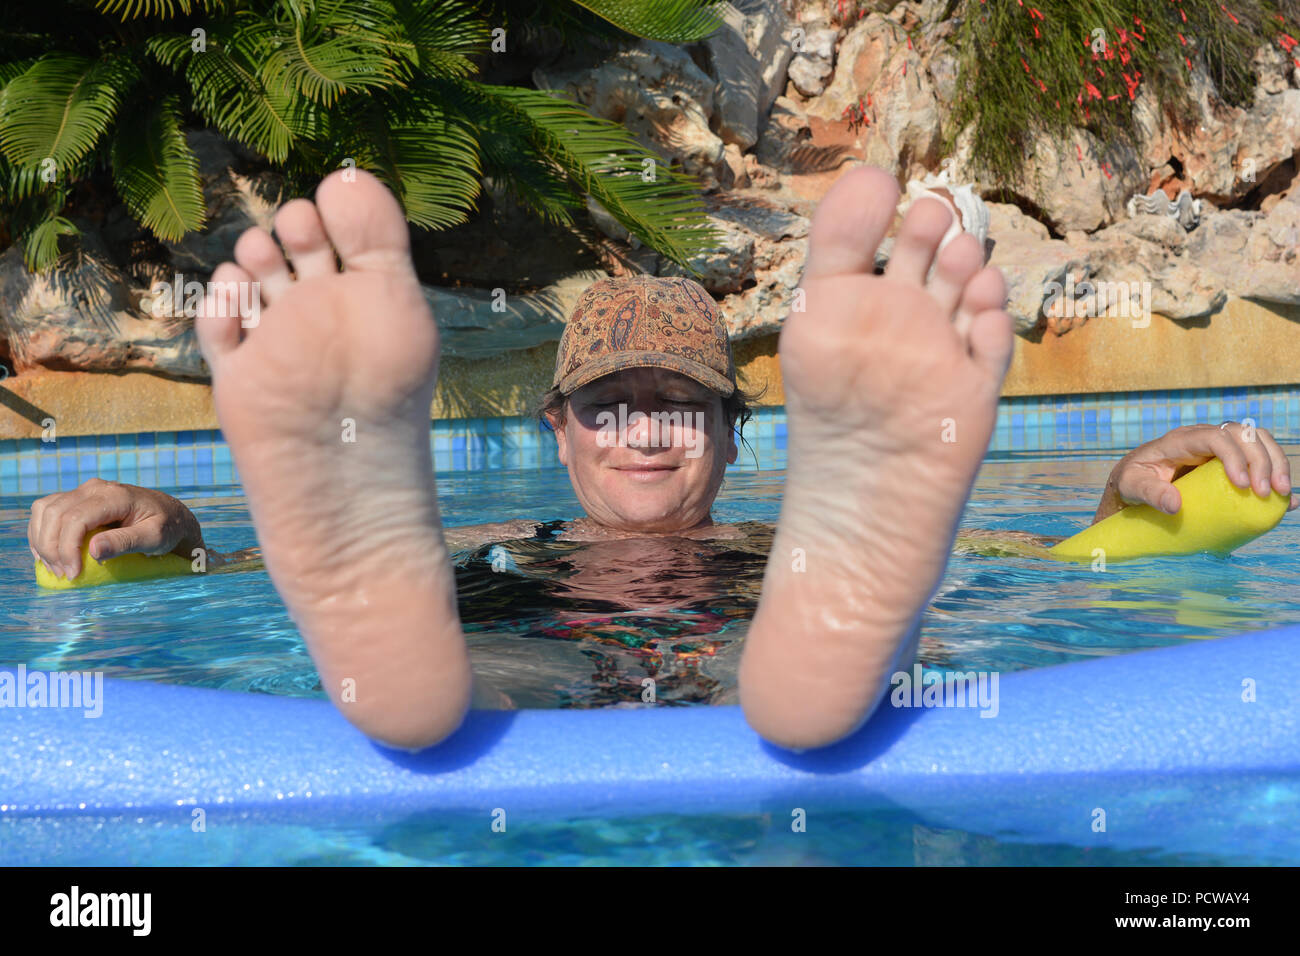 Woman using pool noodles to float in a swimming pool with her feet up - Stock Image